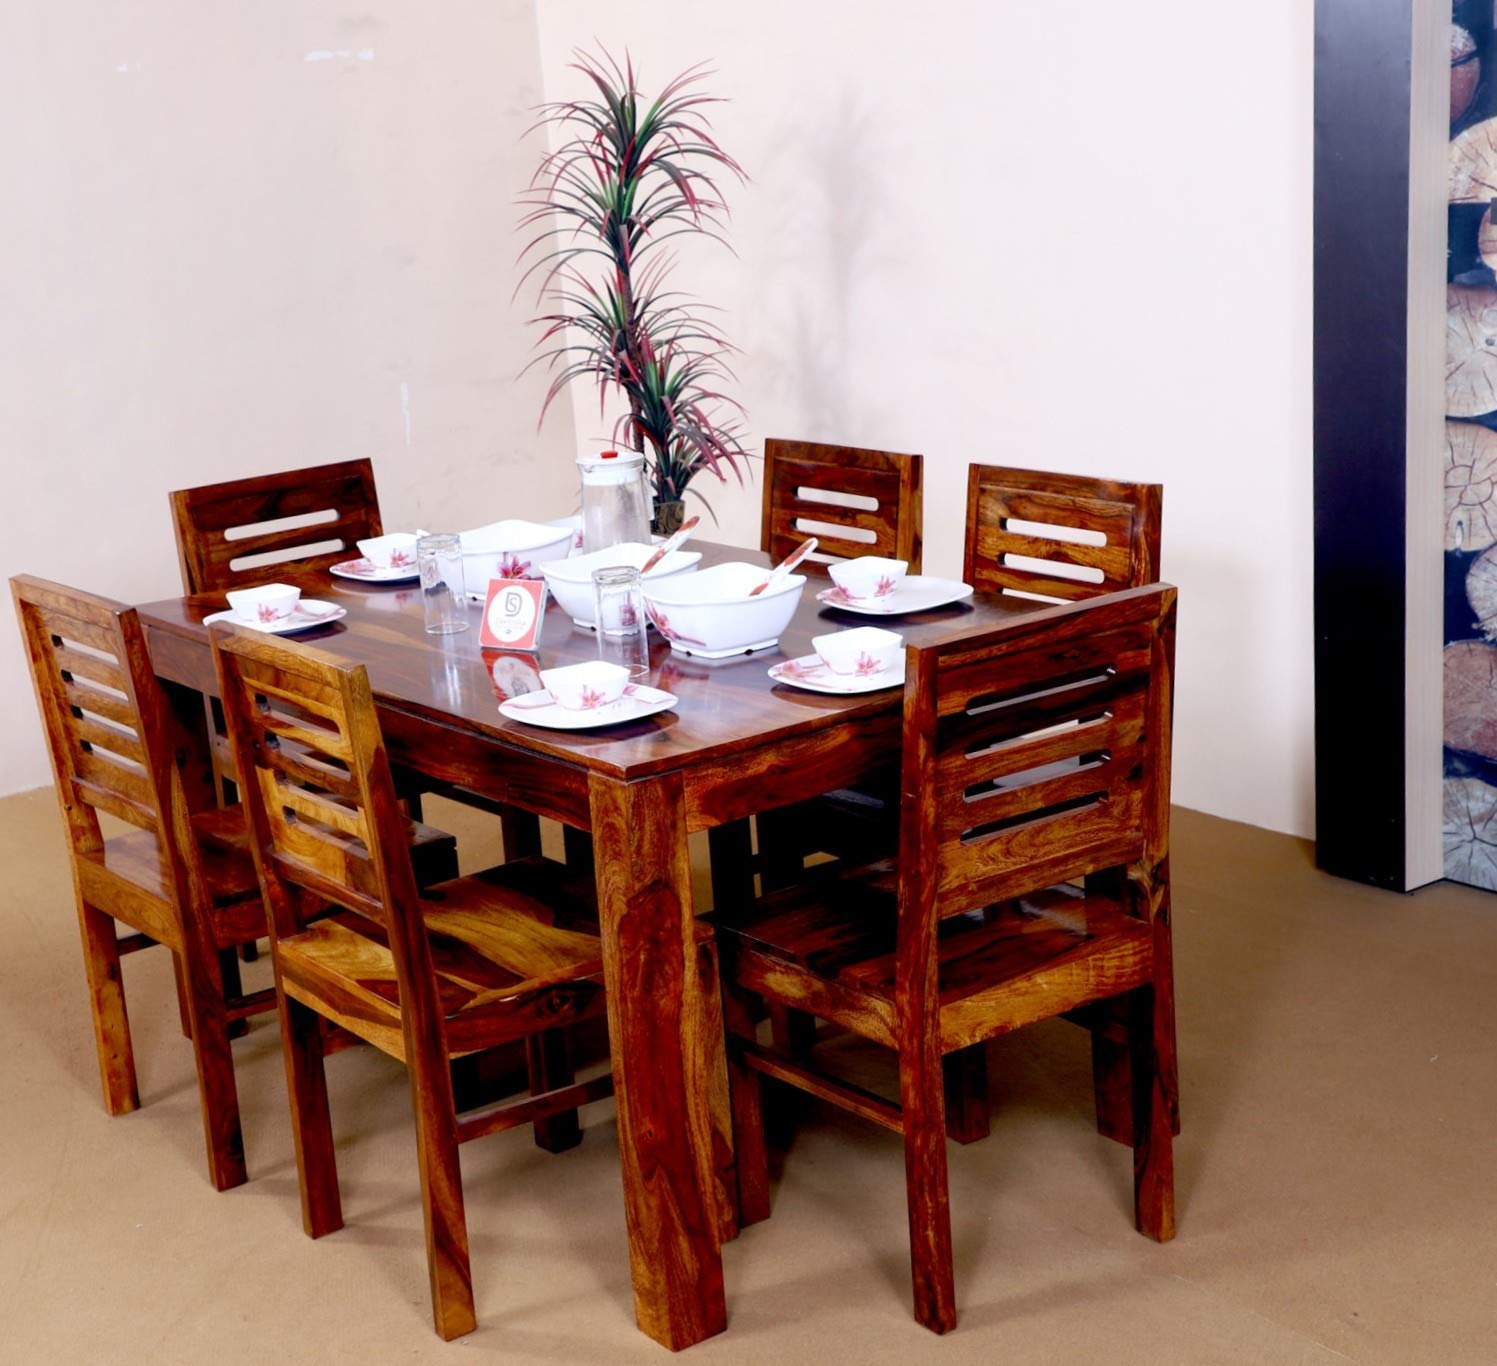 Santosha Decor Sheesham Wood 6 Seater Dining Table With Chairs For